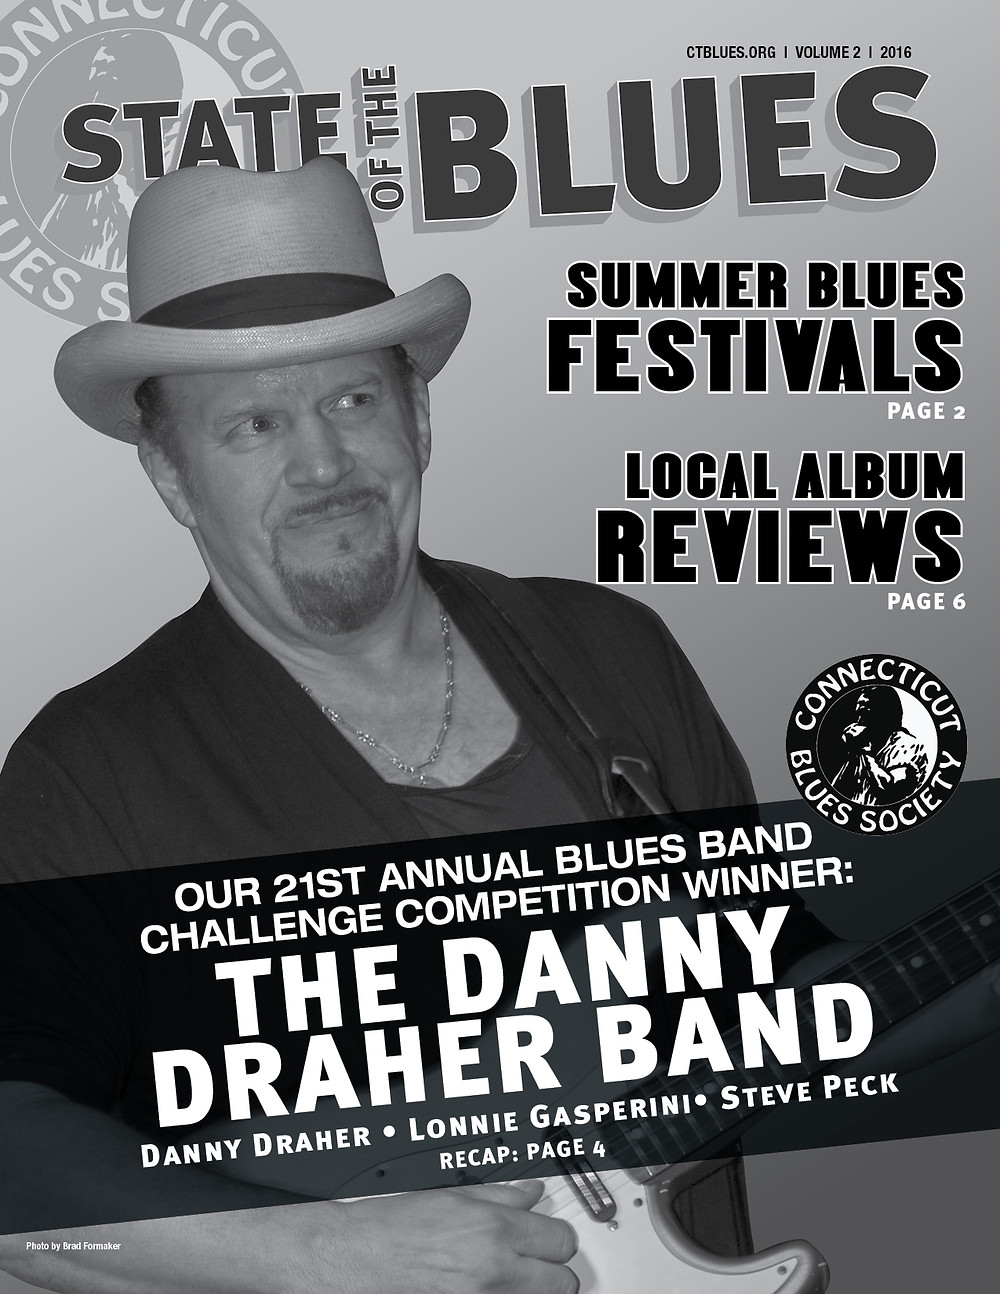 v2.2016 Front Cover: The 21st Annual CT Blues Society Blue Band Challenge Winner